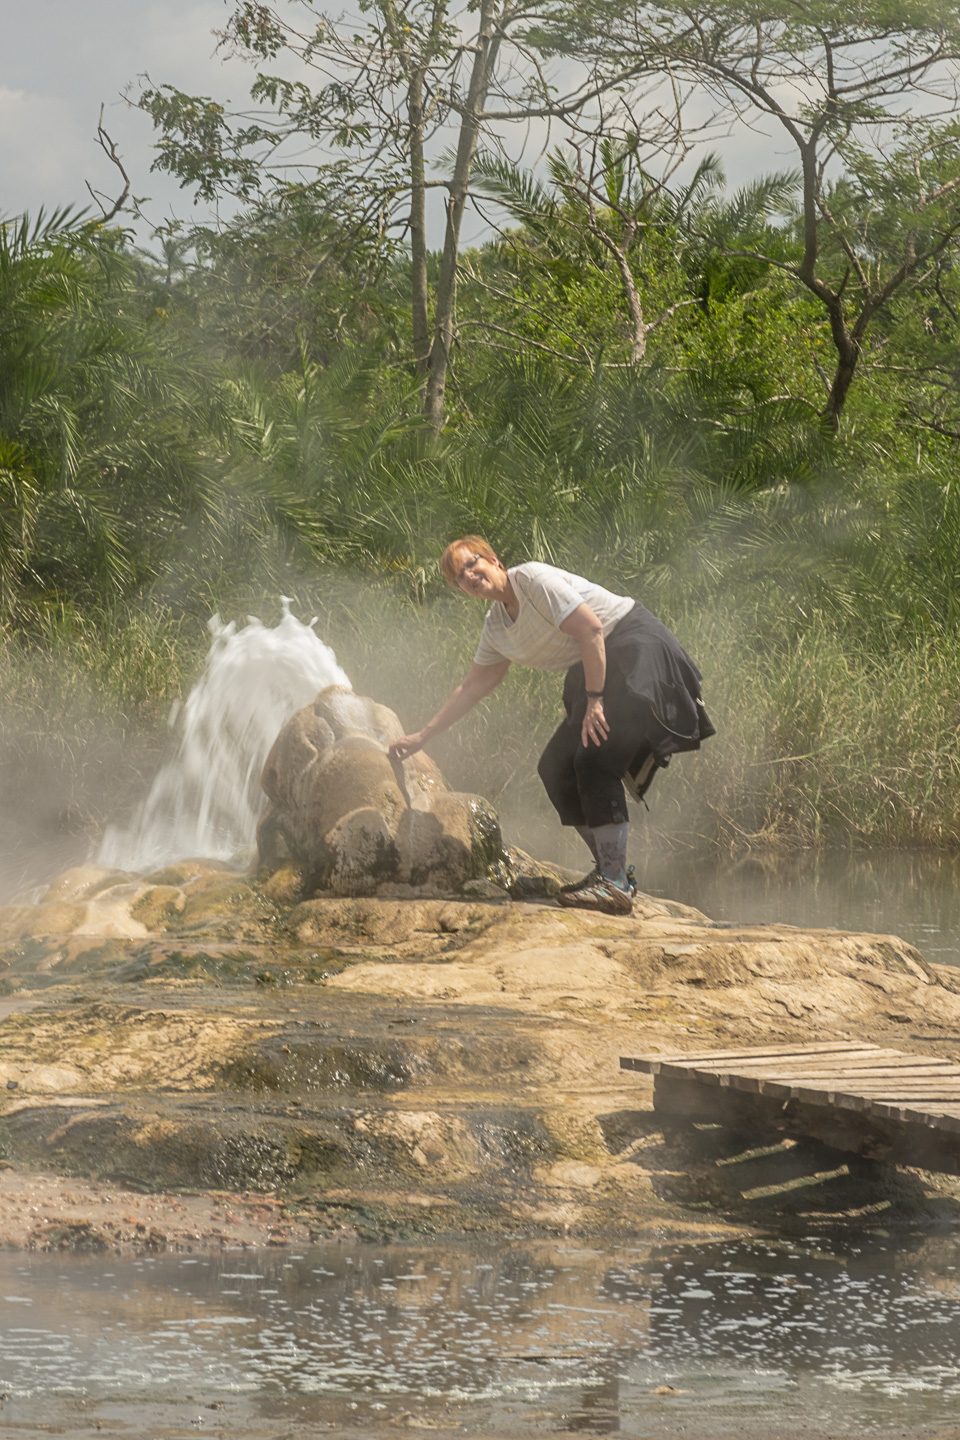 Kim touching the gyser at the female hot springs, Semiliki  copyright @ triple f photo tours